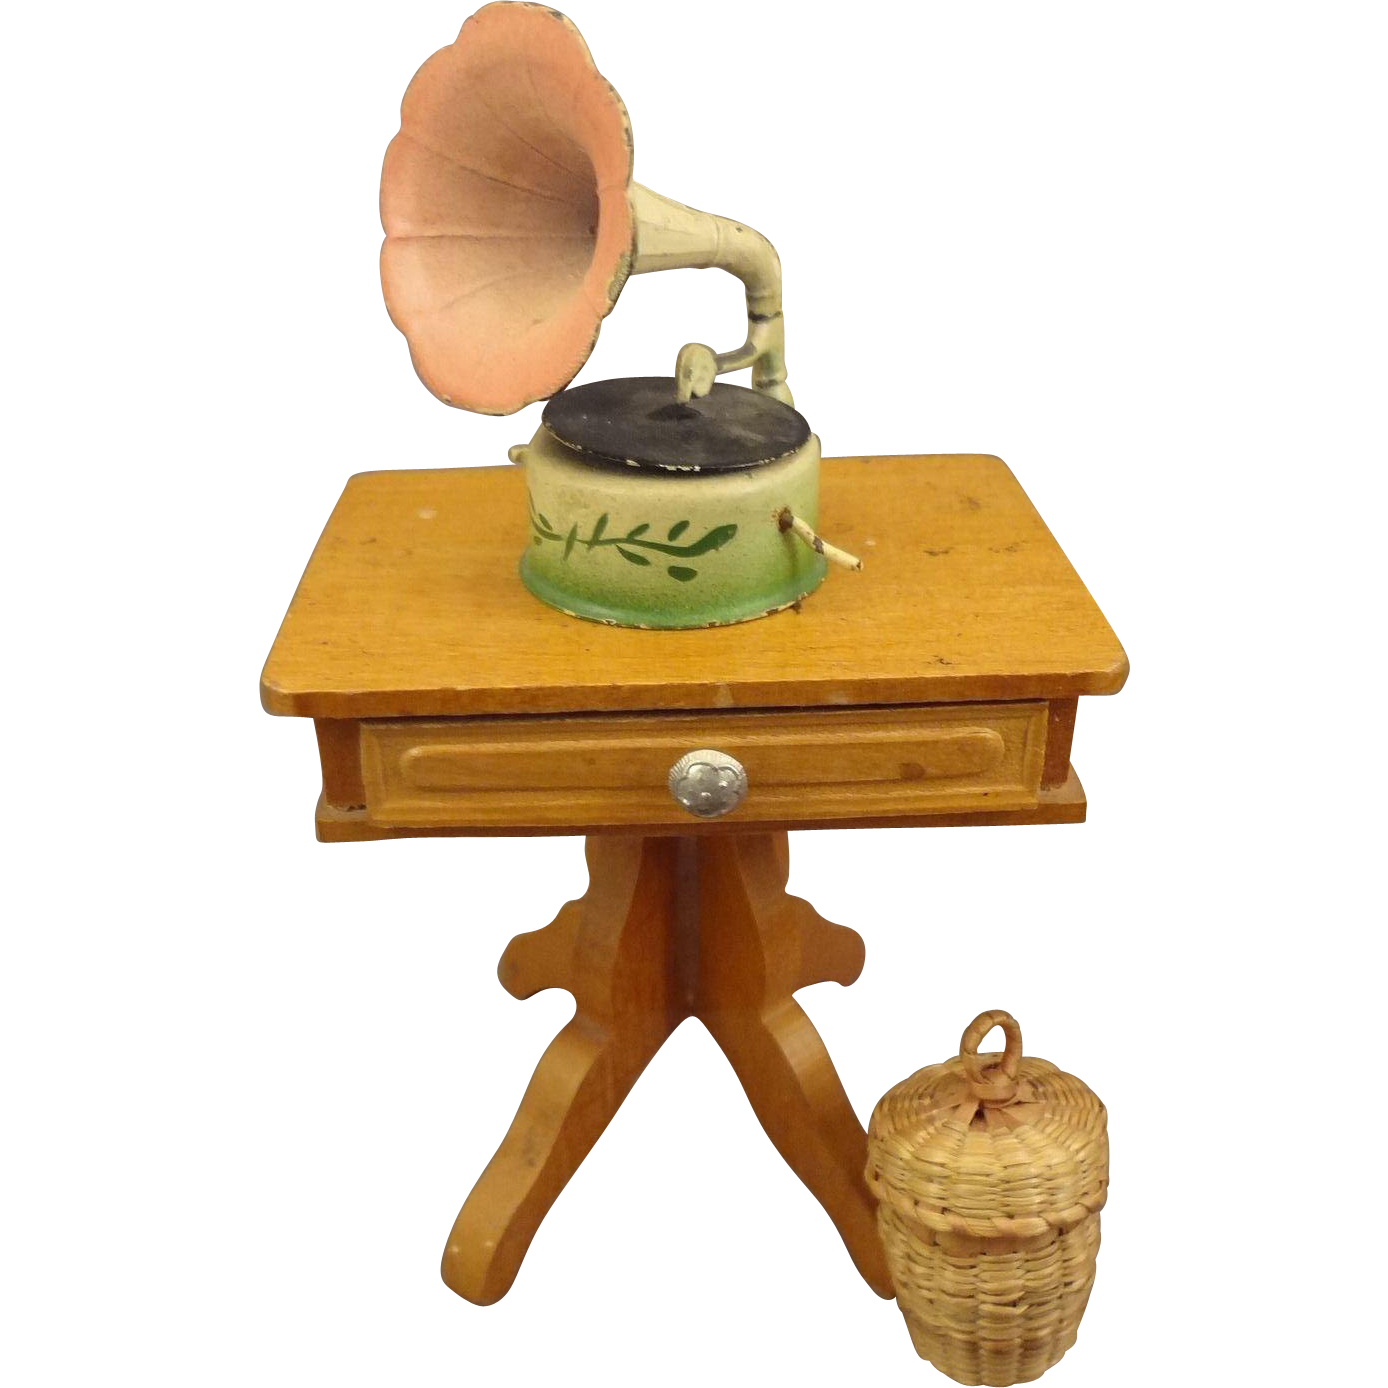 Schneegas Sewing Table with Scissors and Thread in Covered Basket